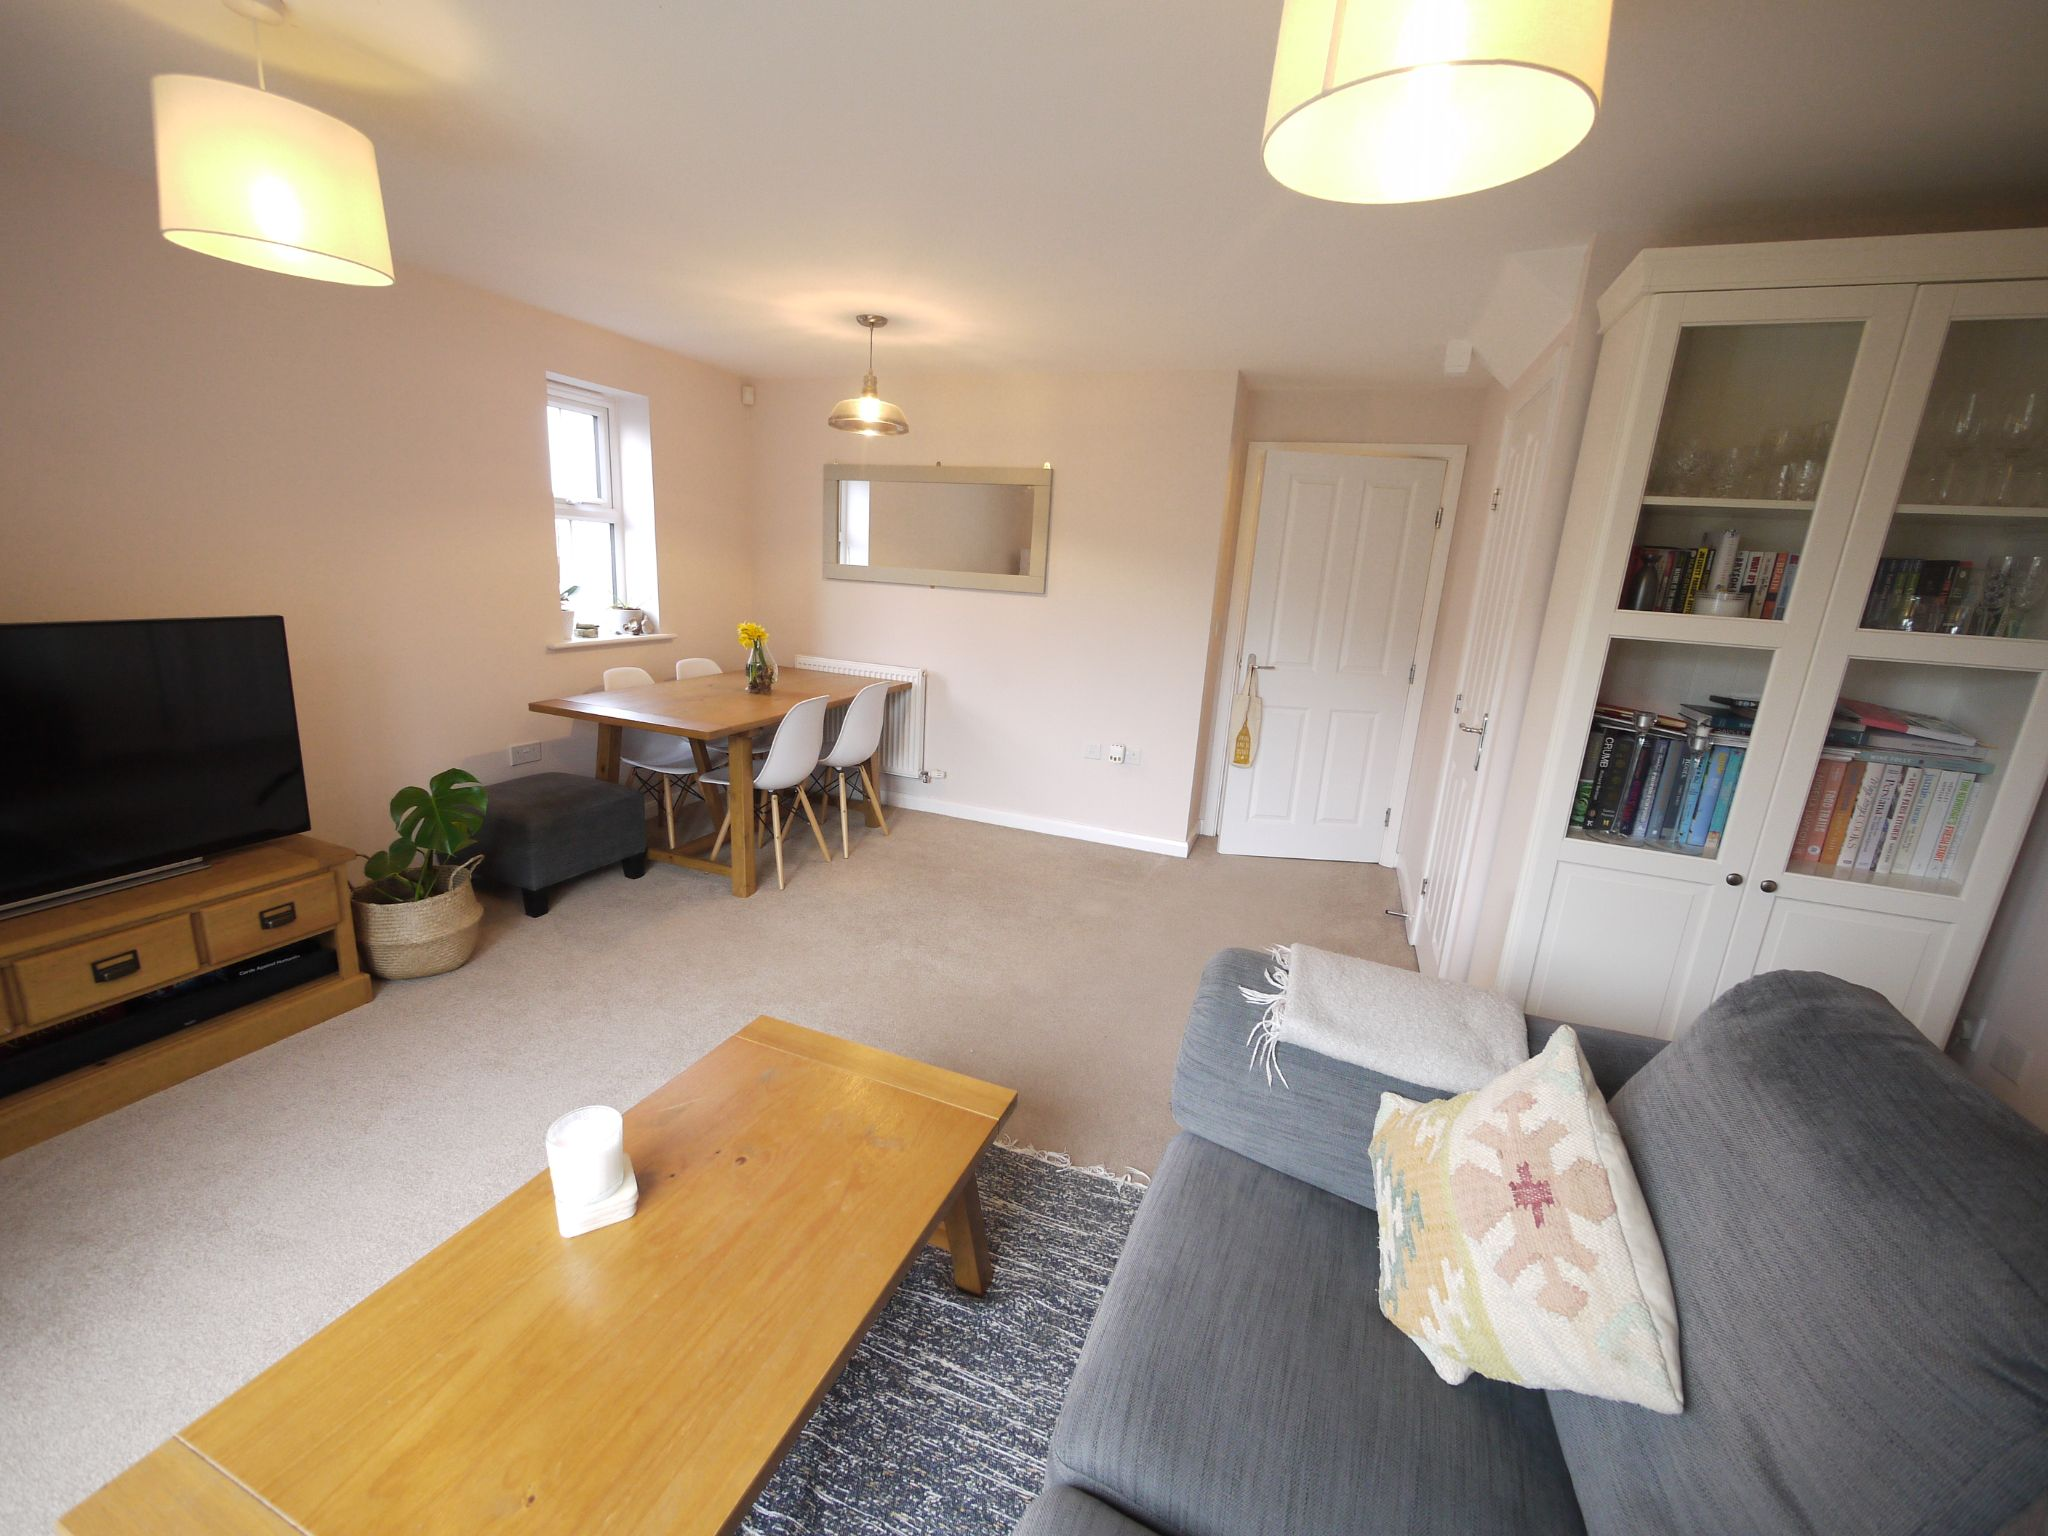 3 bedroom end terraced house SSTC in Cleckheaton - Lounge 3.